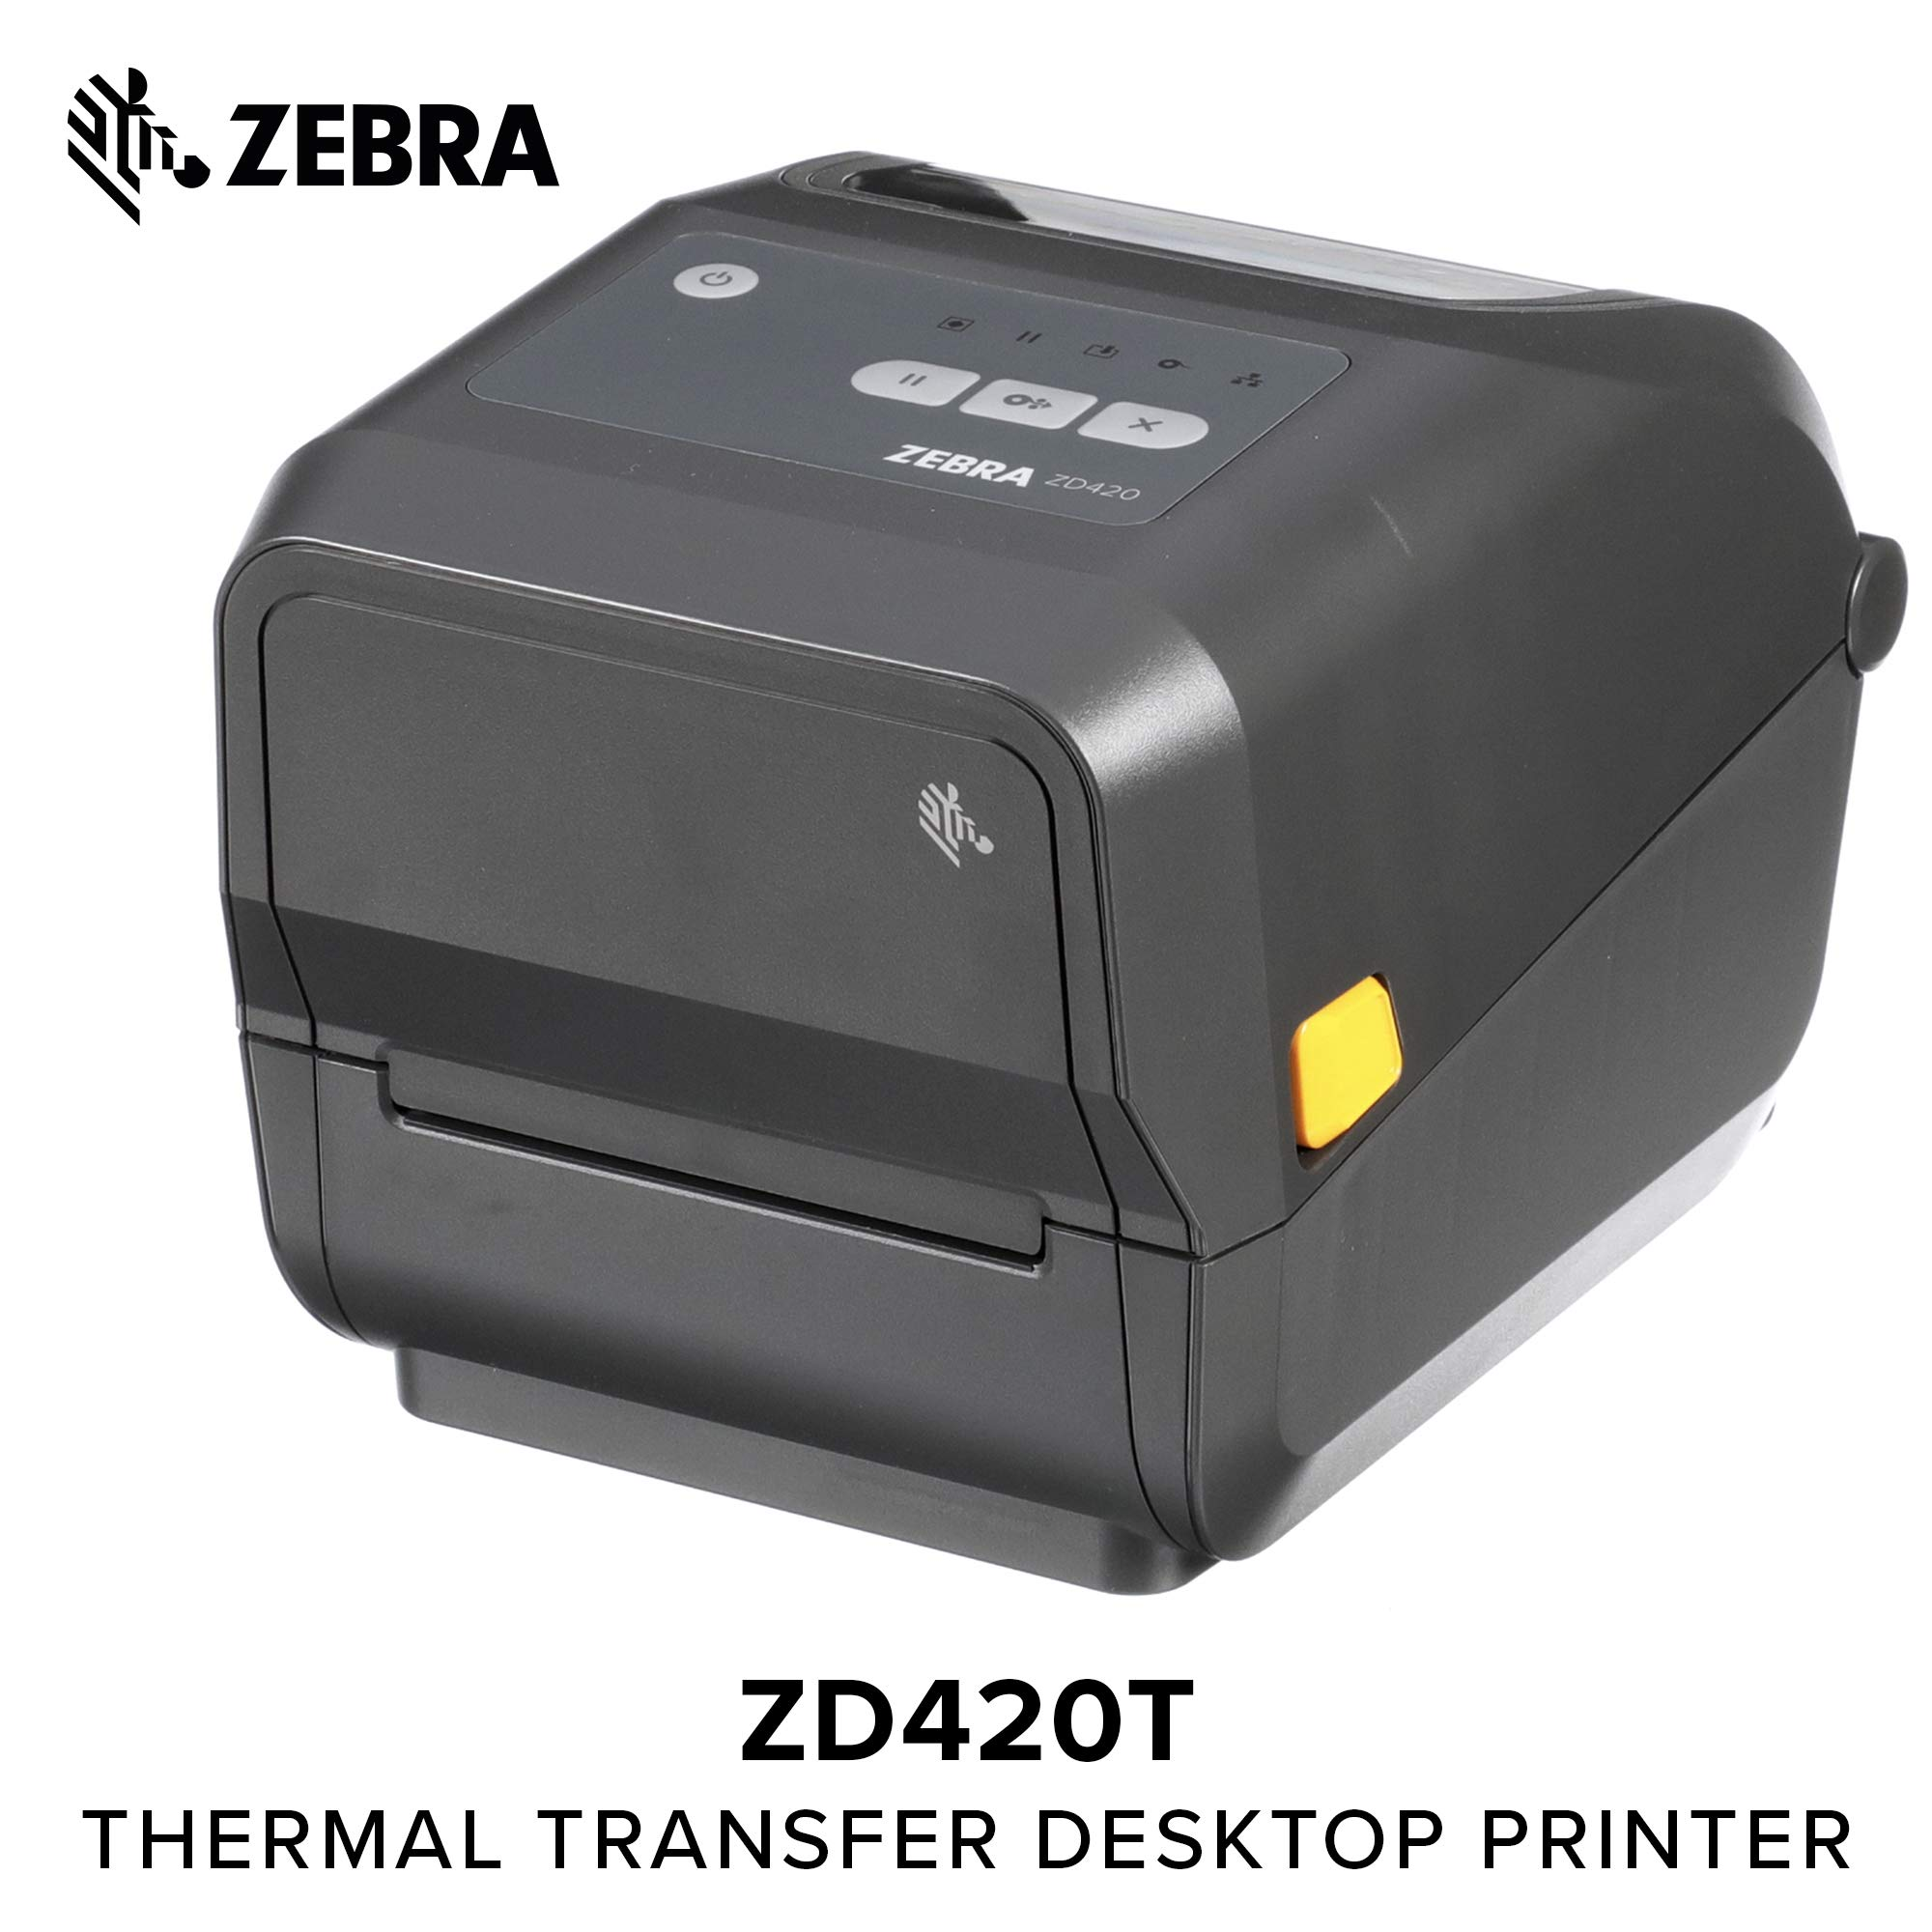 Zebra - ZD420t Thermal Transfer Desktop Printer for Labels and Barcodes - Print Width 4 in - 300 dpi - Interface: WiFi, Bluetooth, USB - ZD42043-T01W01EZ